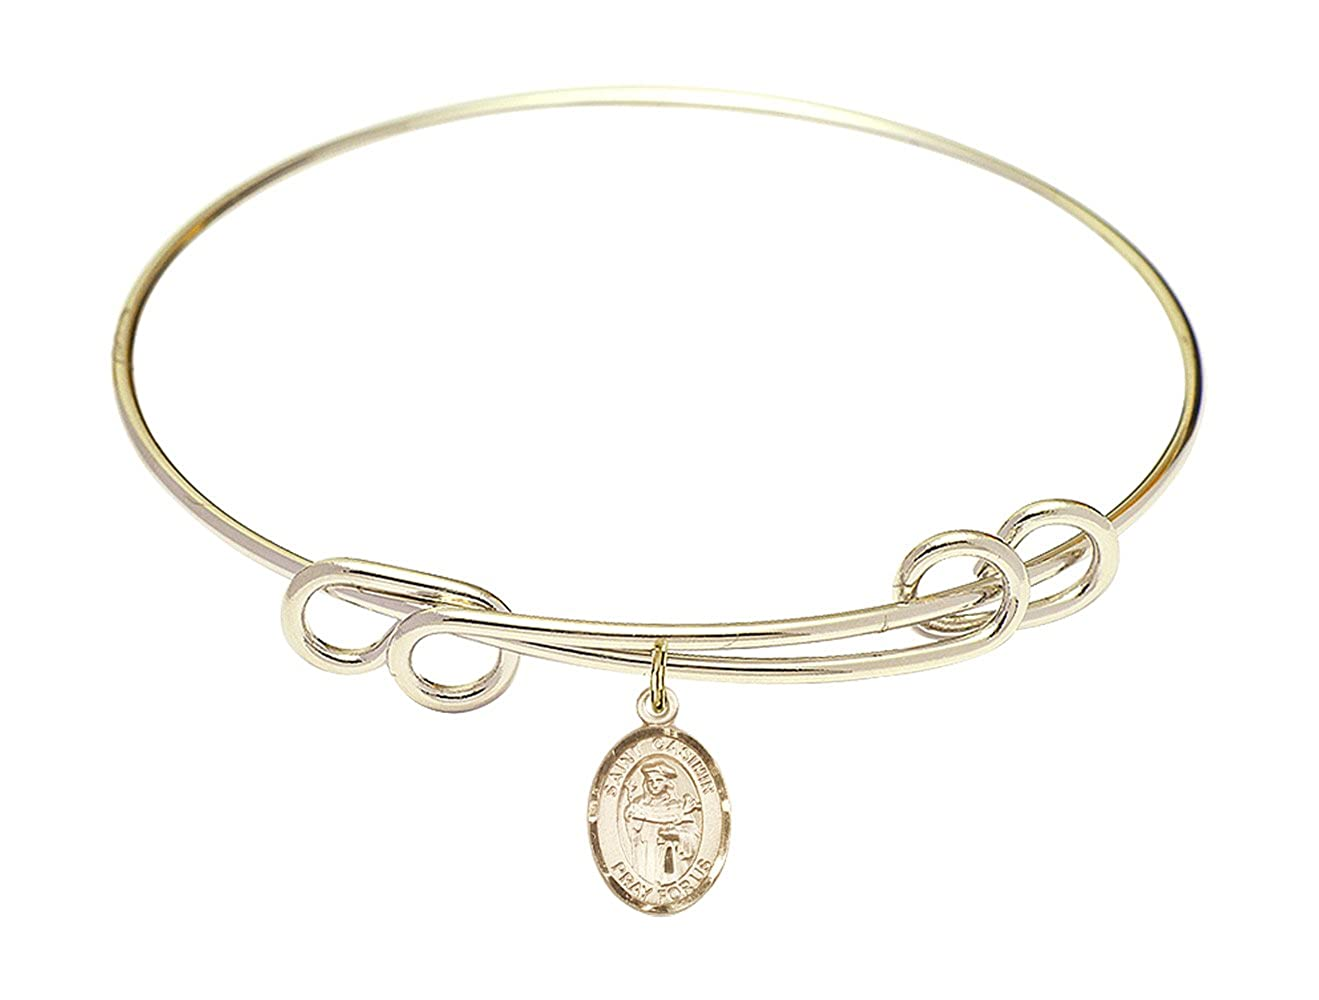 Casimir of Poland Charm. DiamondJewelryNY Double Loop Bangle Bracelet with a St